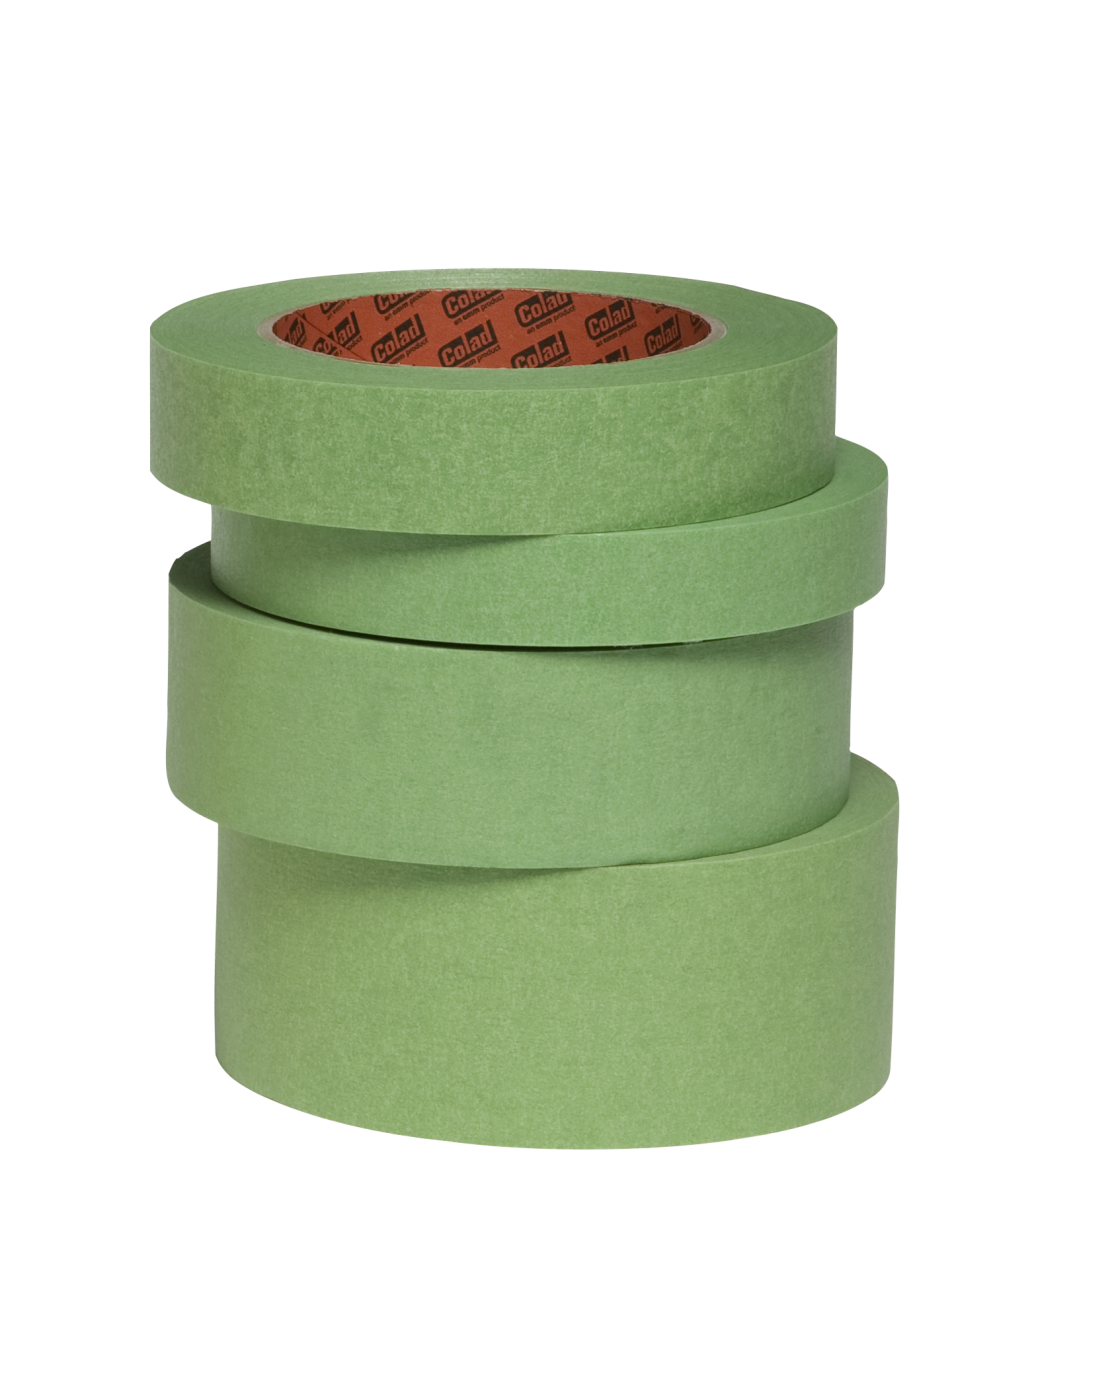 COLAD PROFESSIONAL MASKING TAPE